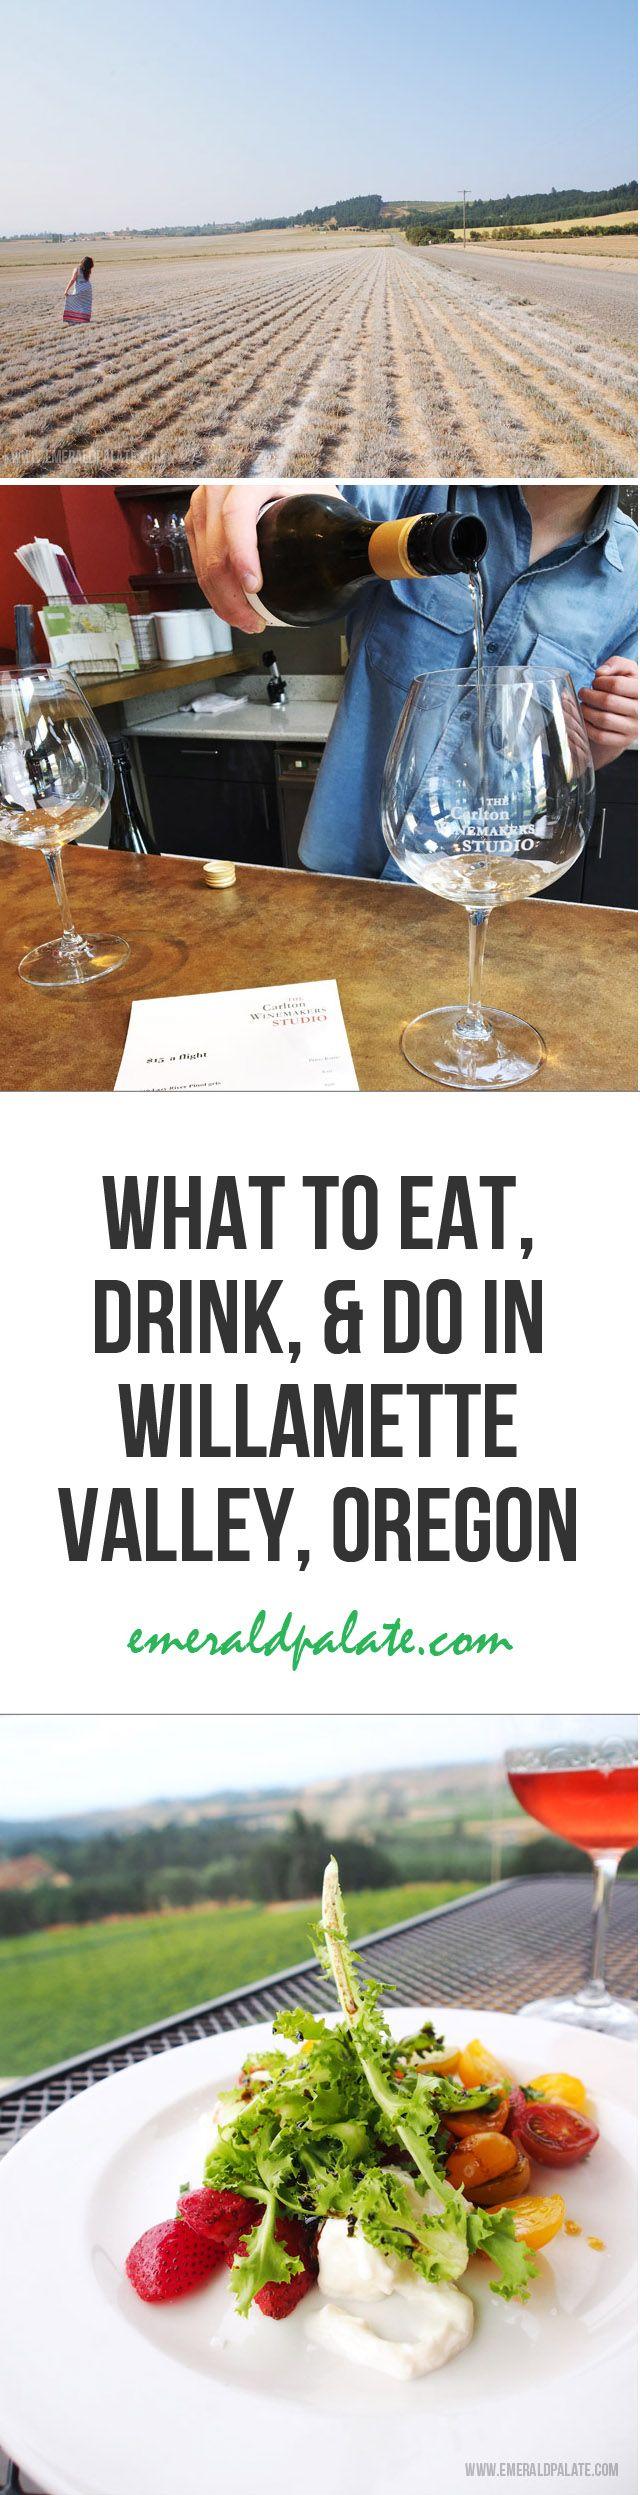 What to eat, drink, and do in Oregon's Willamette Valley wine region. It outlines the best wineries near Portland, restaurants, shops and boutique or unique hotels in Oregon.